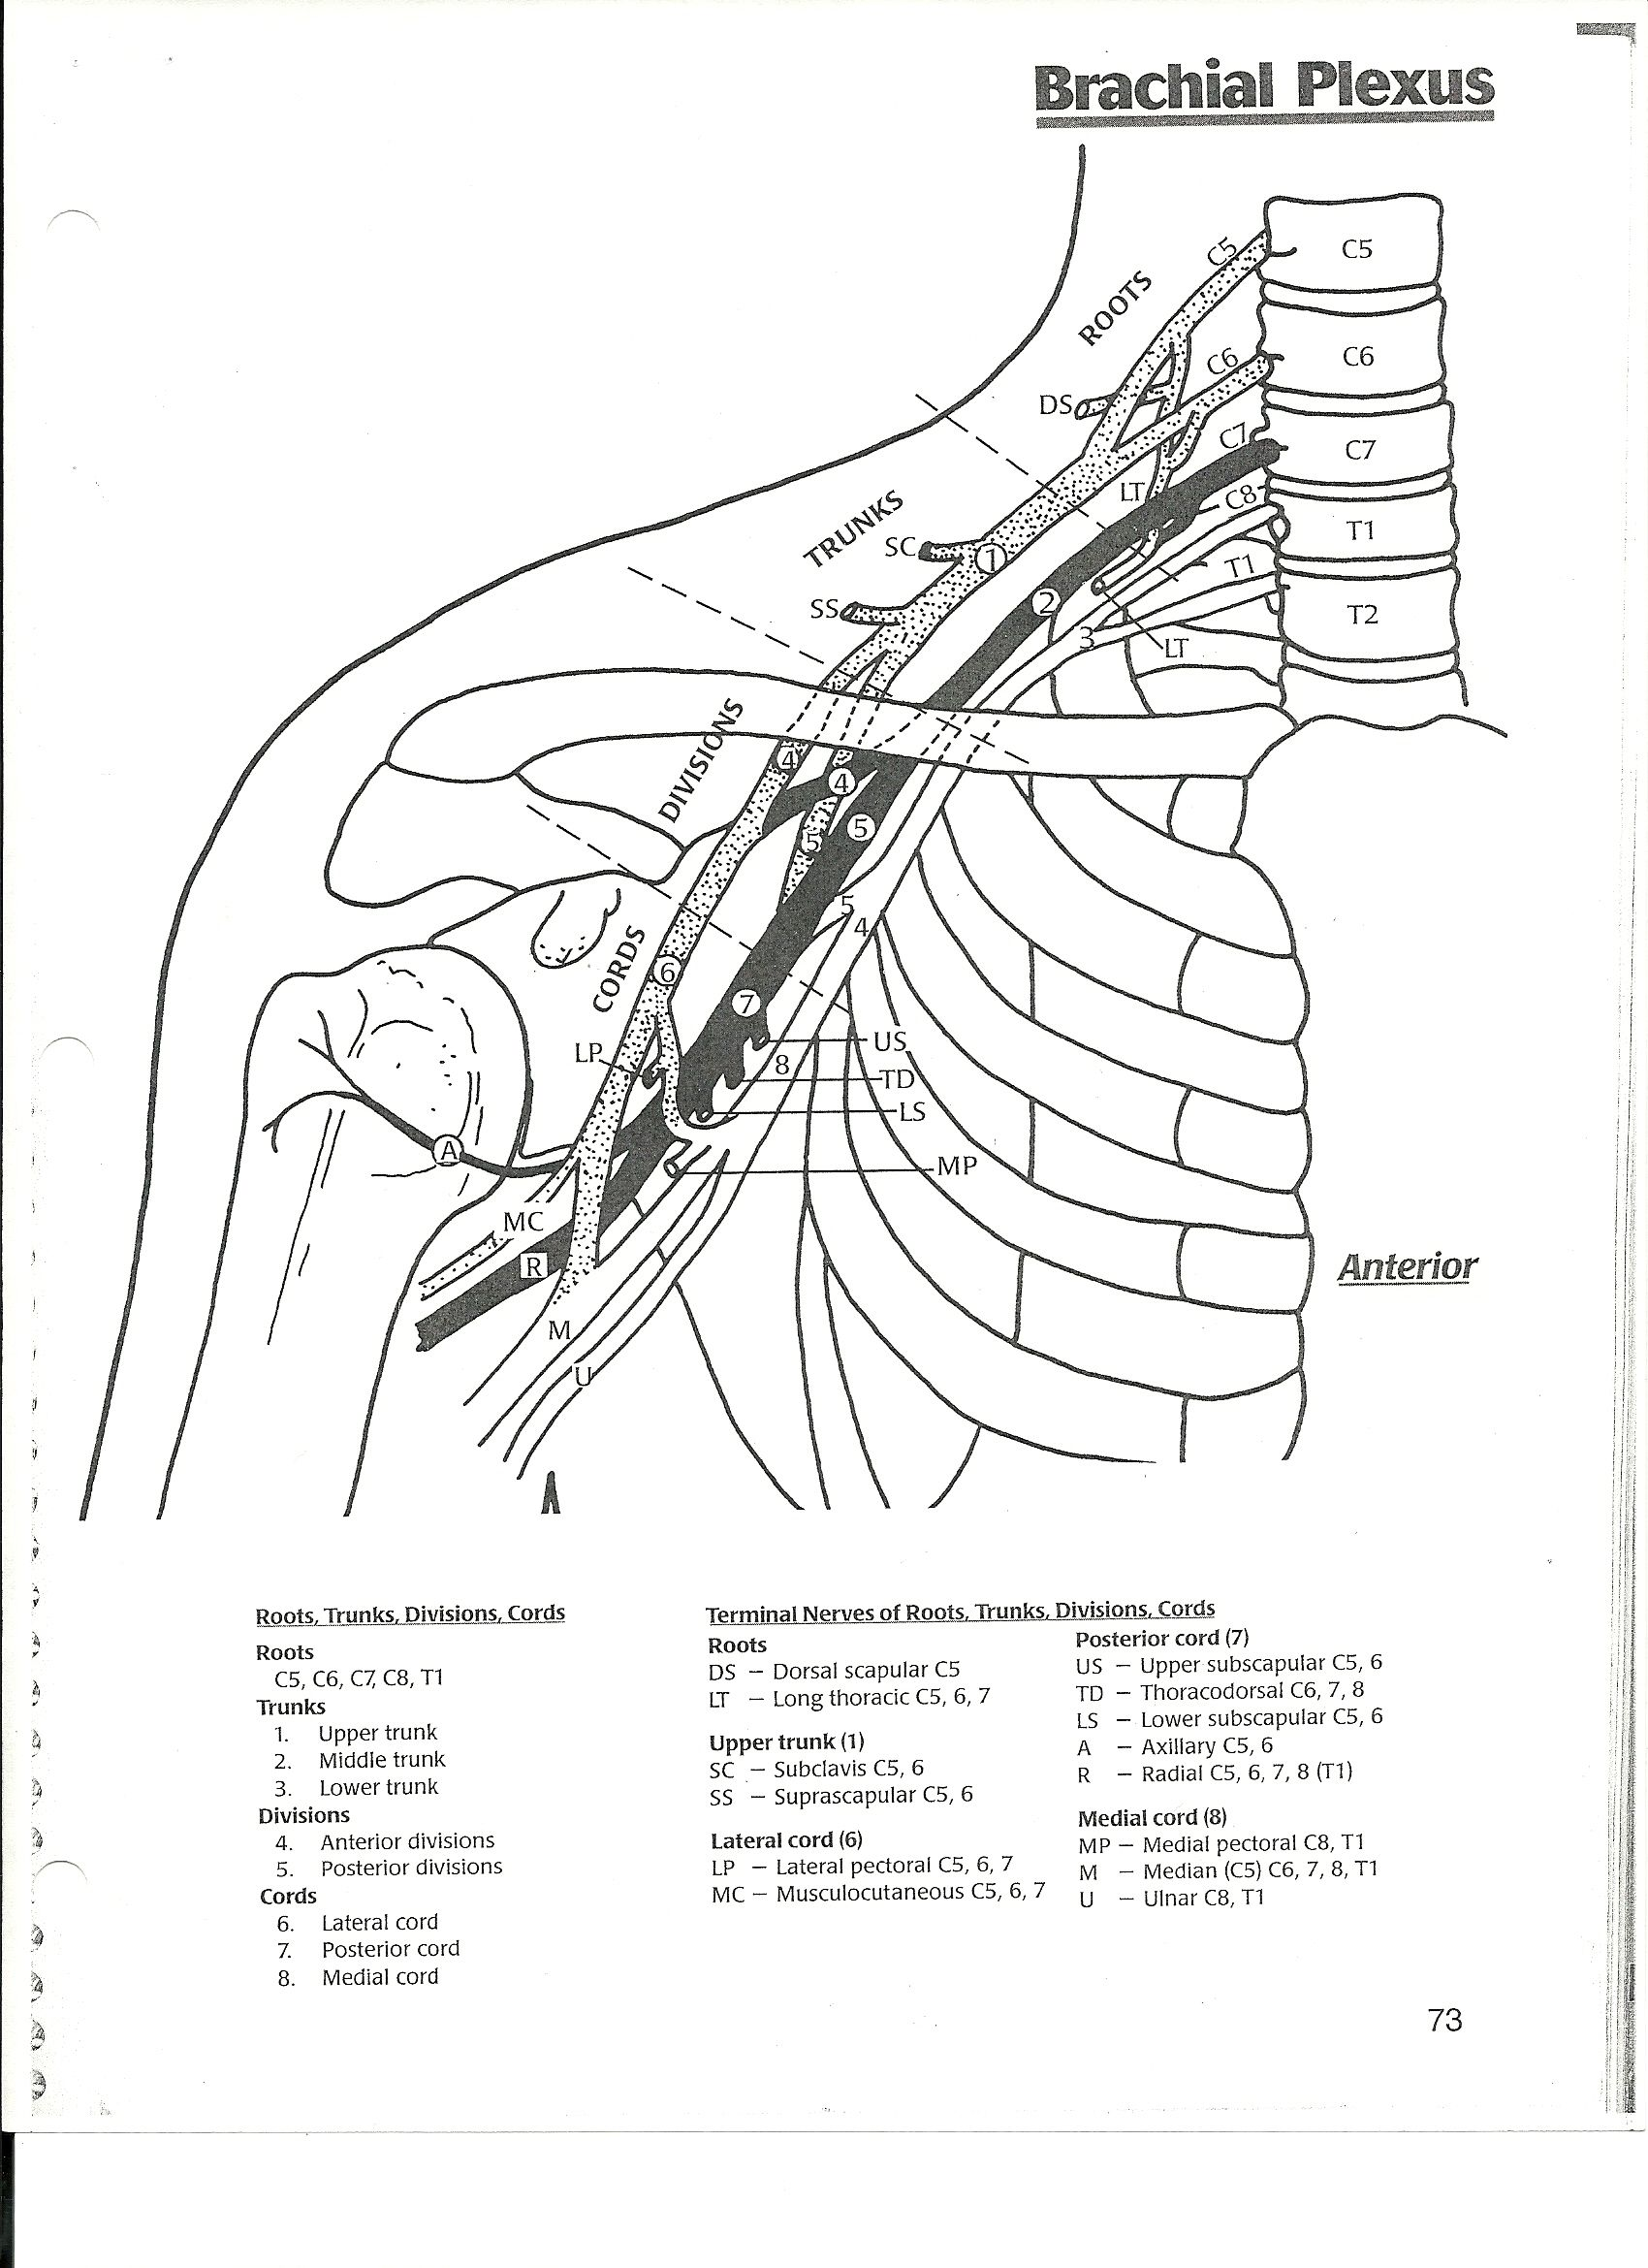 Brachial Plexus With Images